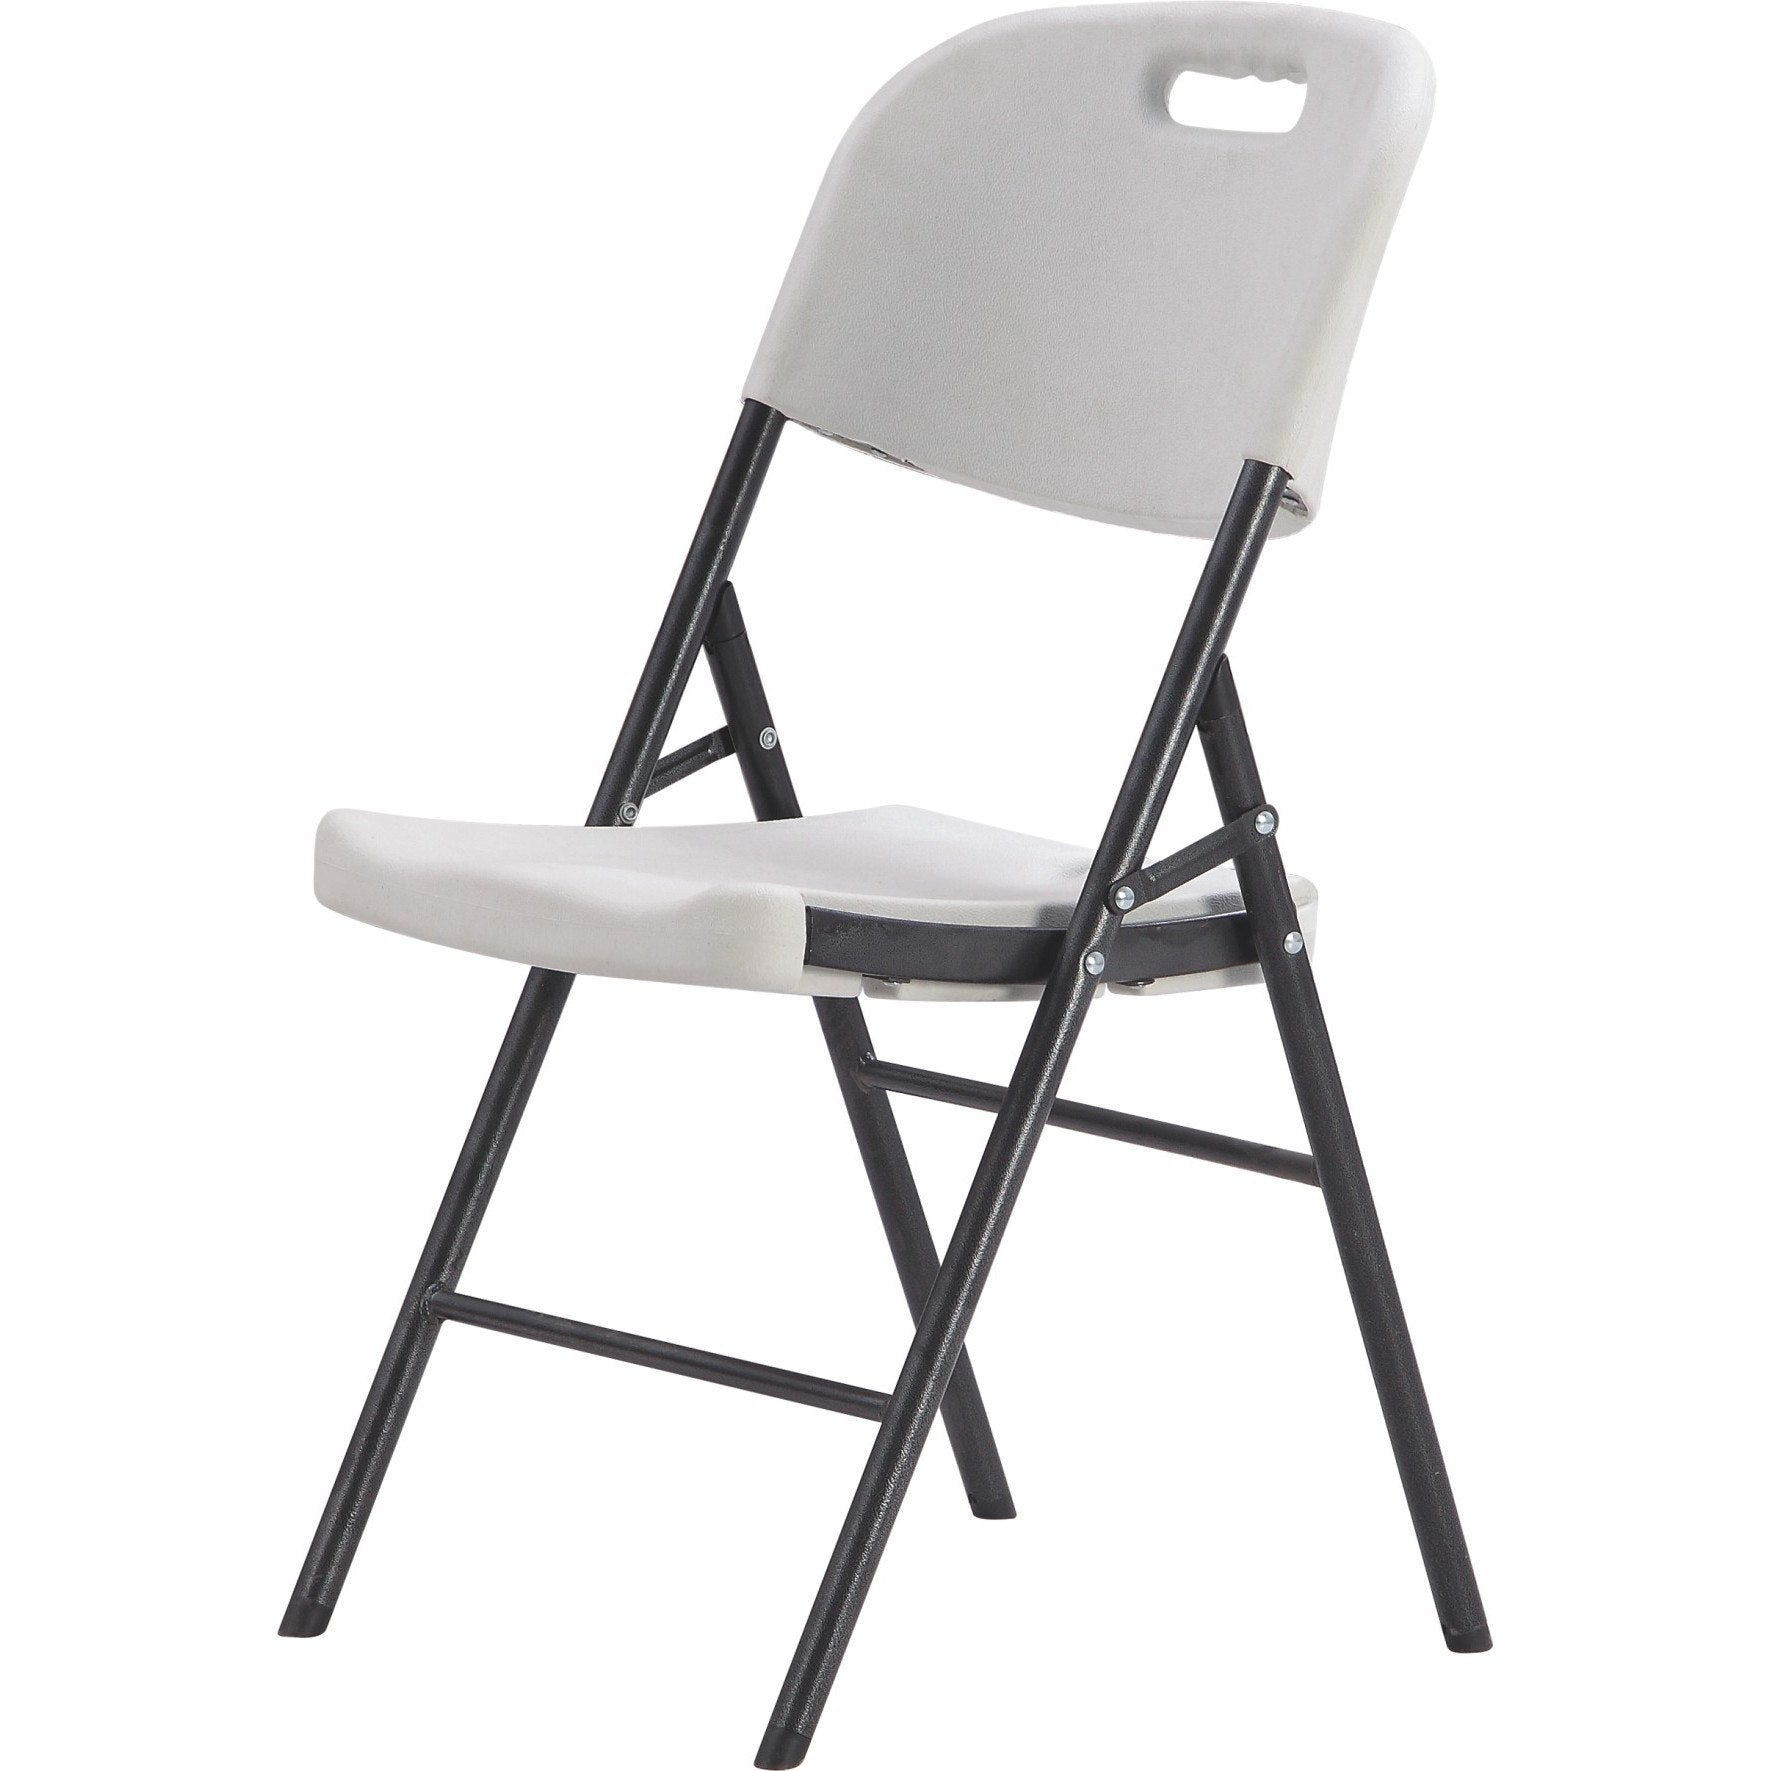 y53 hdpe plastic folding chair suchprice singapore. Black Bedroom Furniture Sets. Home Design Ideas